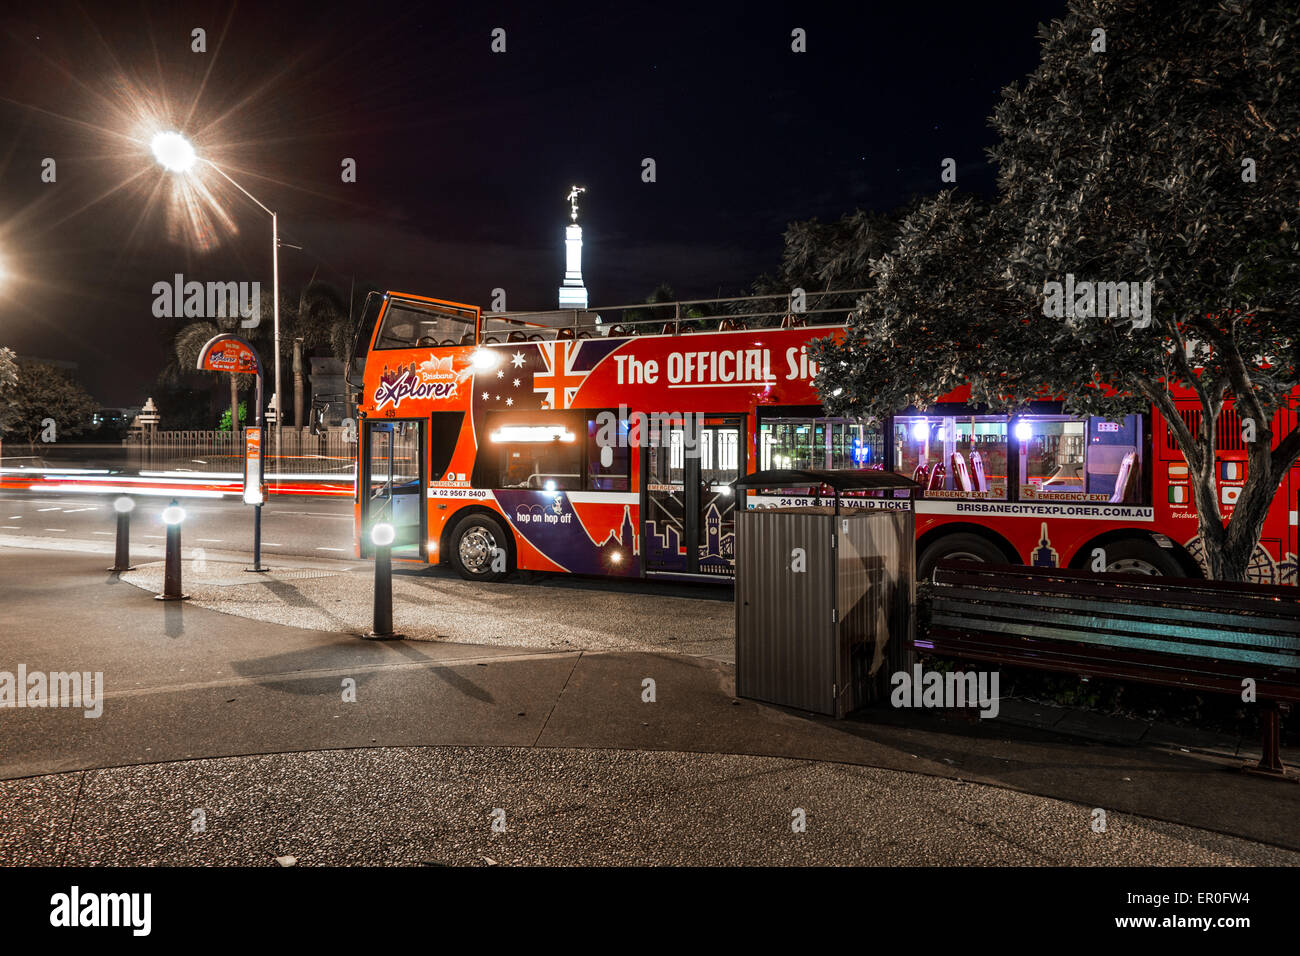 Brisbane Explorer Bus at Night with Light Trails - Stock Image